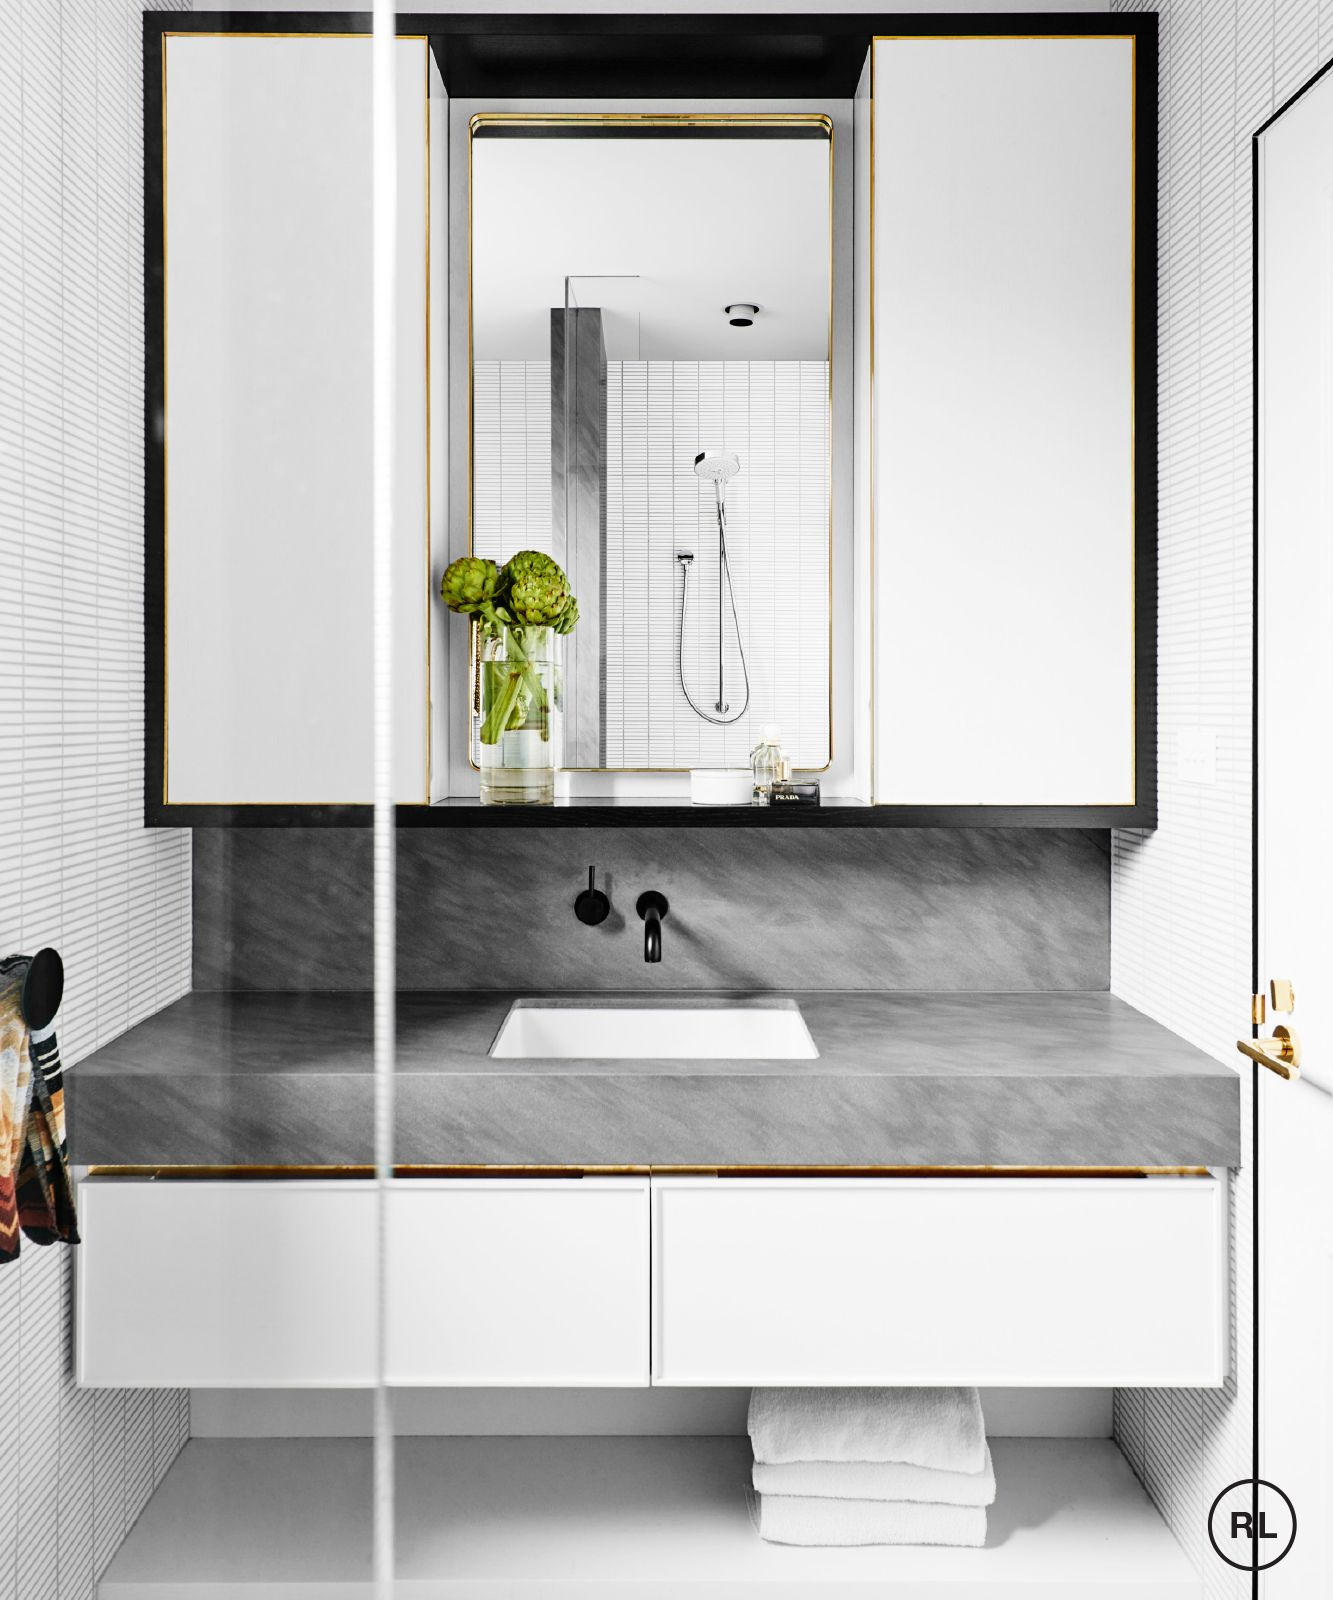 David flack is flack studio a melbourne based interior for Bathroom decor melbourne